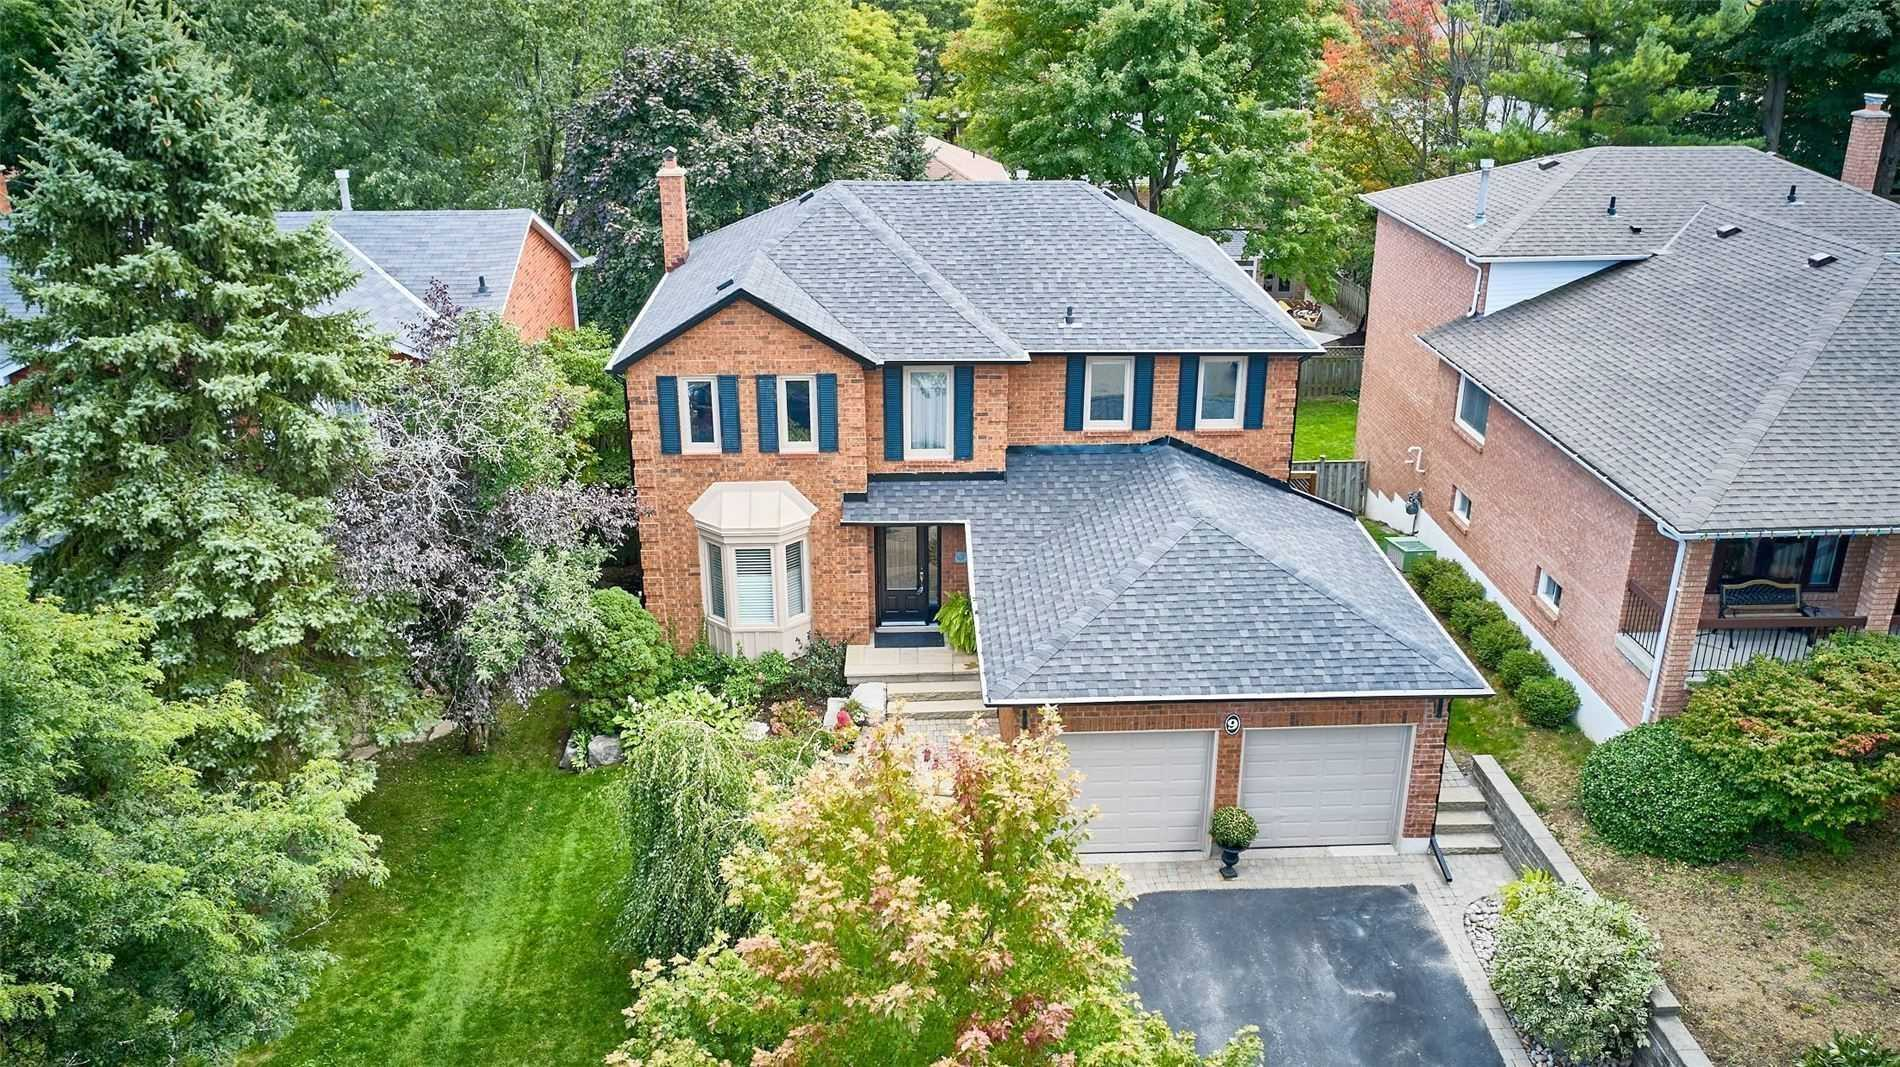 Detached house For Lease In Aurora - 9 Chadburn Cres, Aurora, Ontario, Canada L4G4T4 , 2 Bedrooms Bedrooms, ,1 BathroomBathrooms,Detached,For Lease,Lower,Chadburn